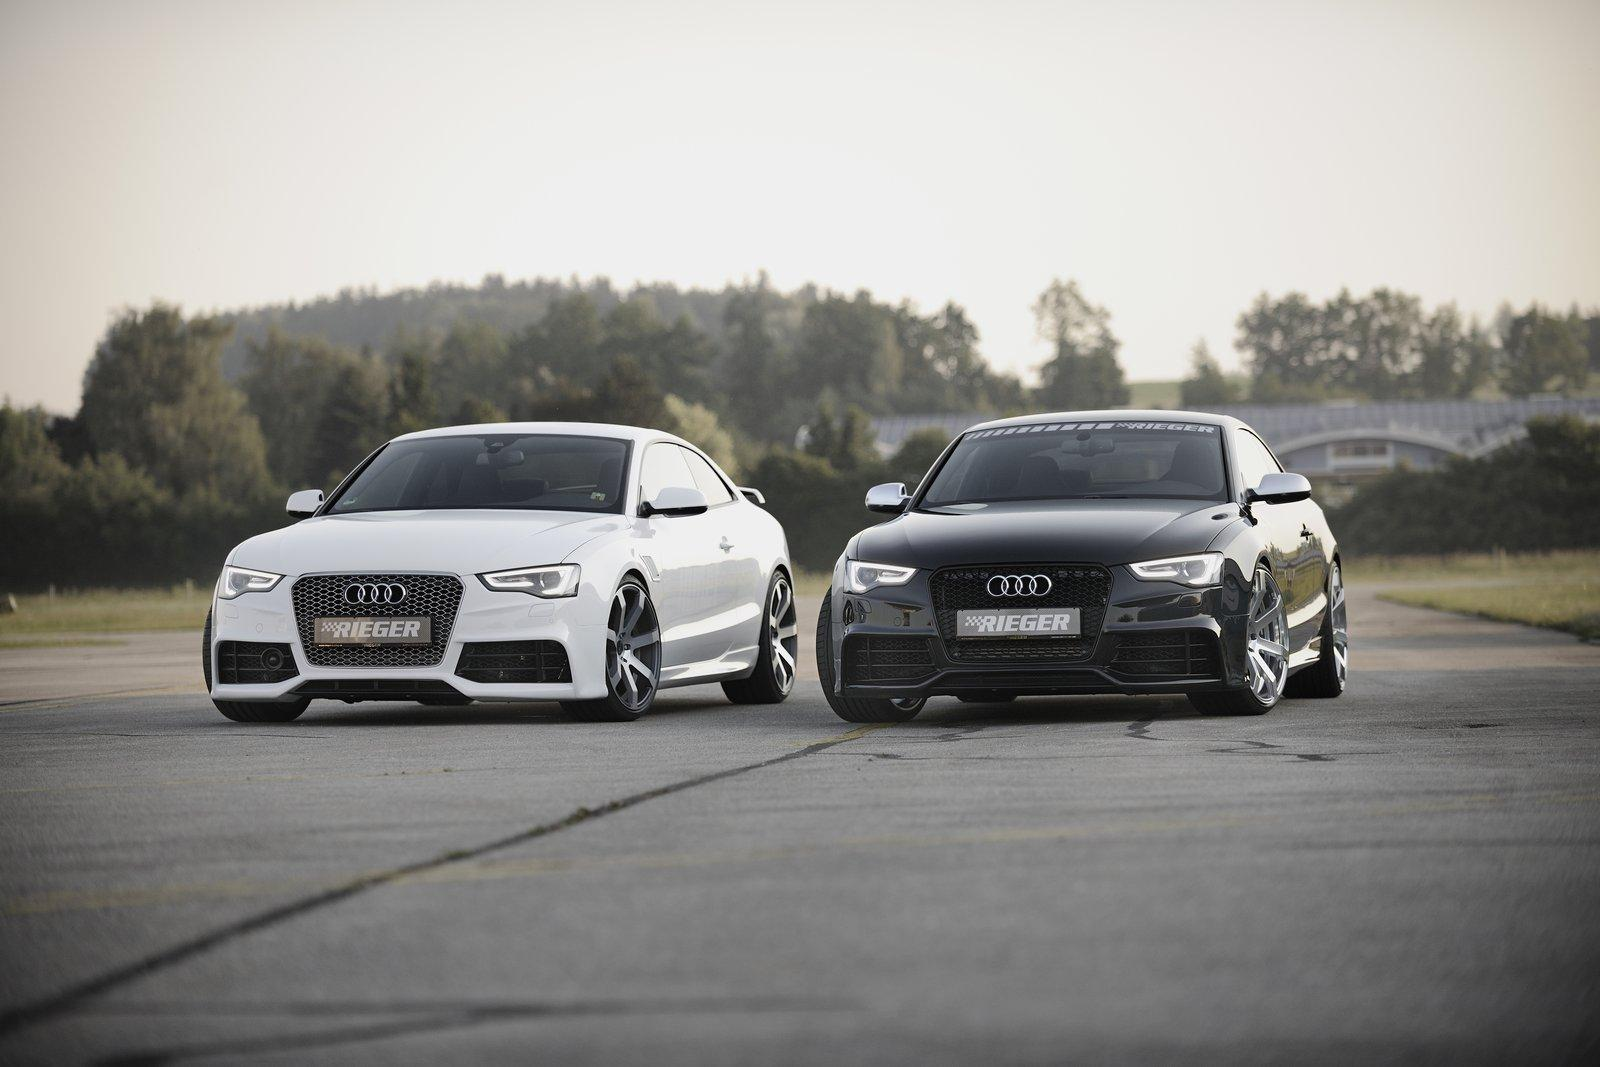 2012-Audi-A5-Facelift-Rieger-Tuning-3.jpg?imgmax=1800